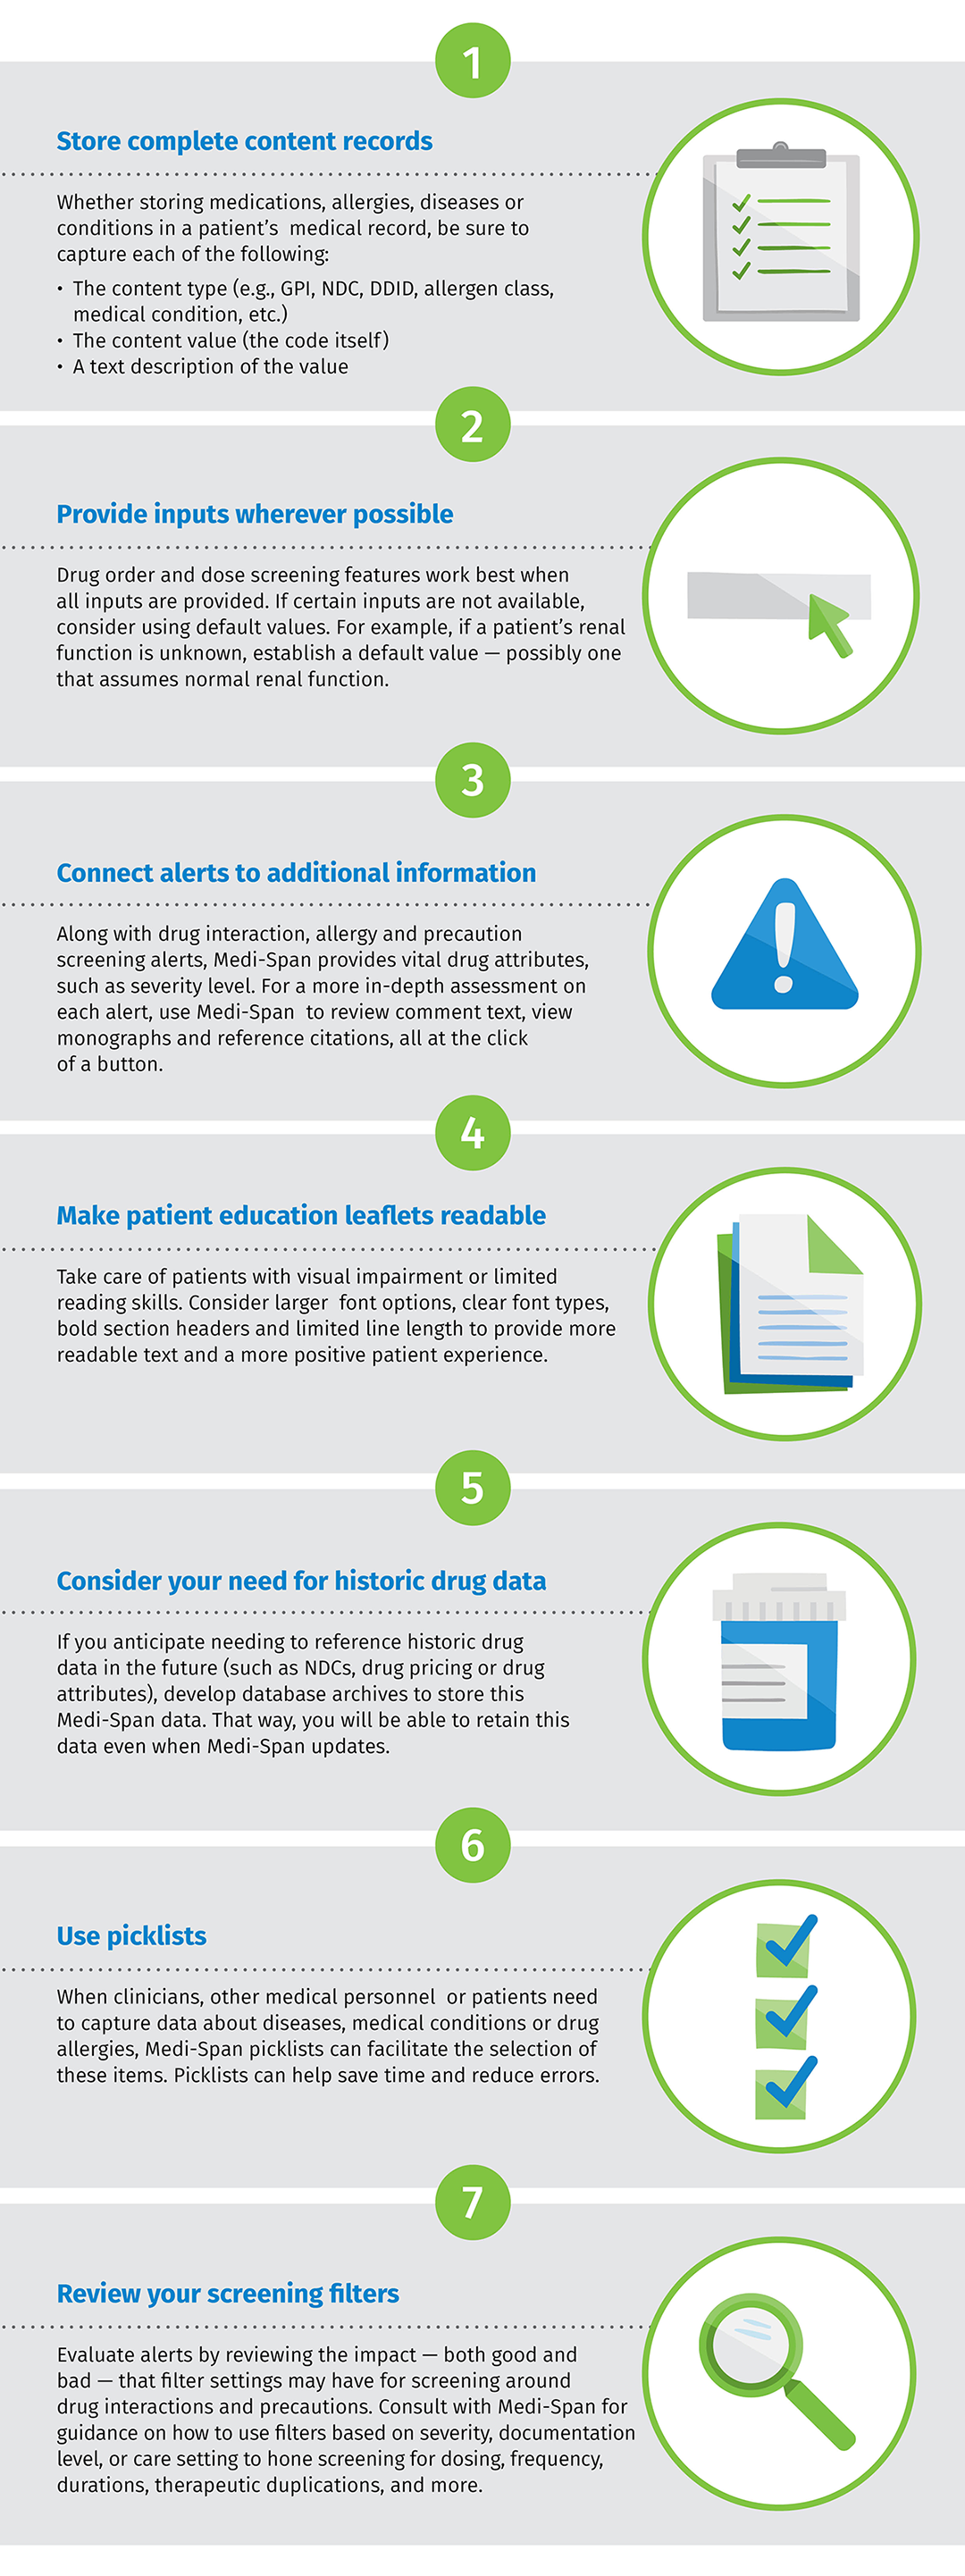 7 Best Practices to Maximize Your Medi-Span infographic